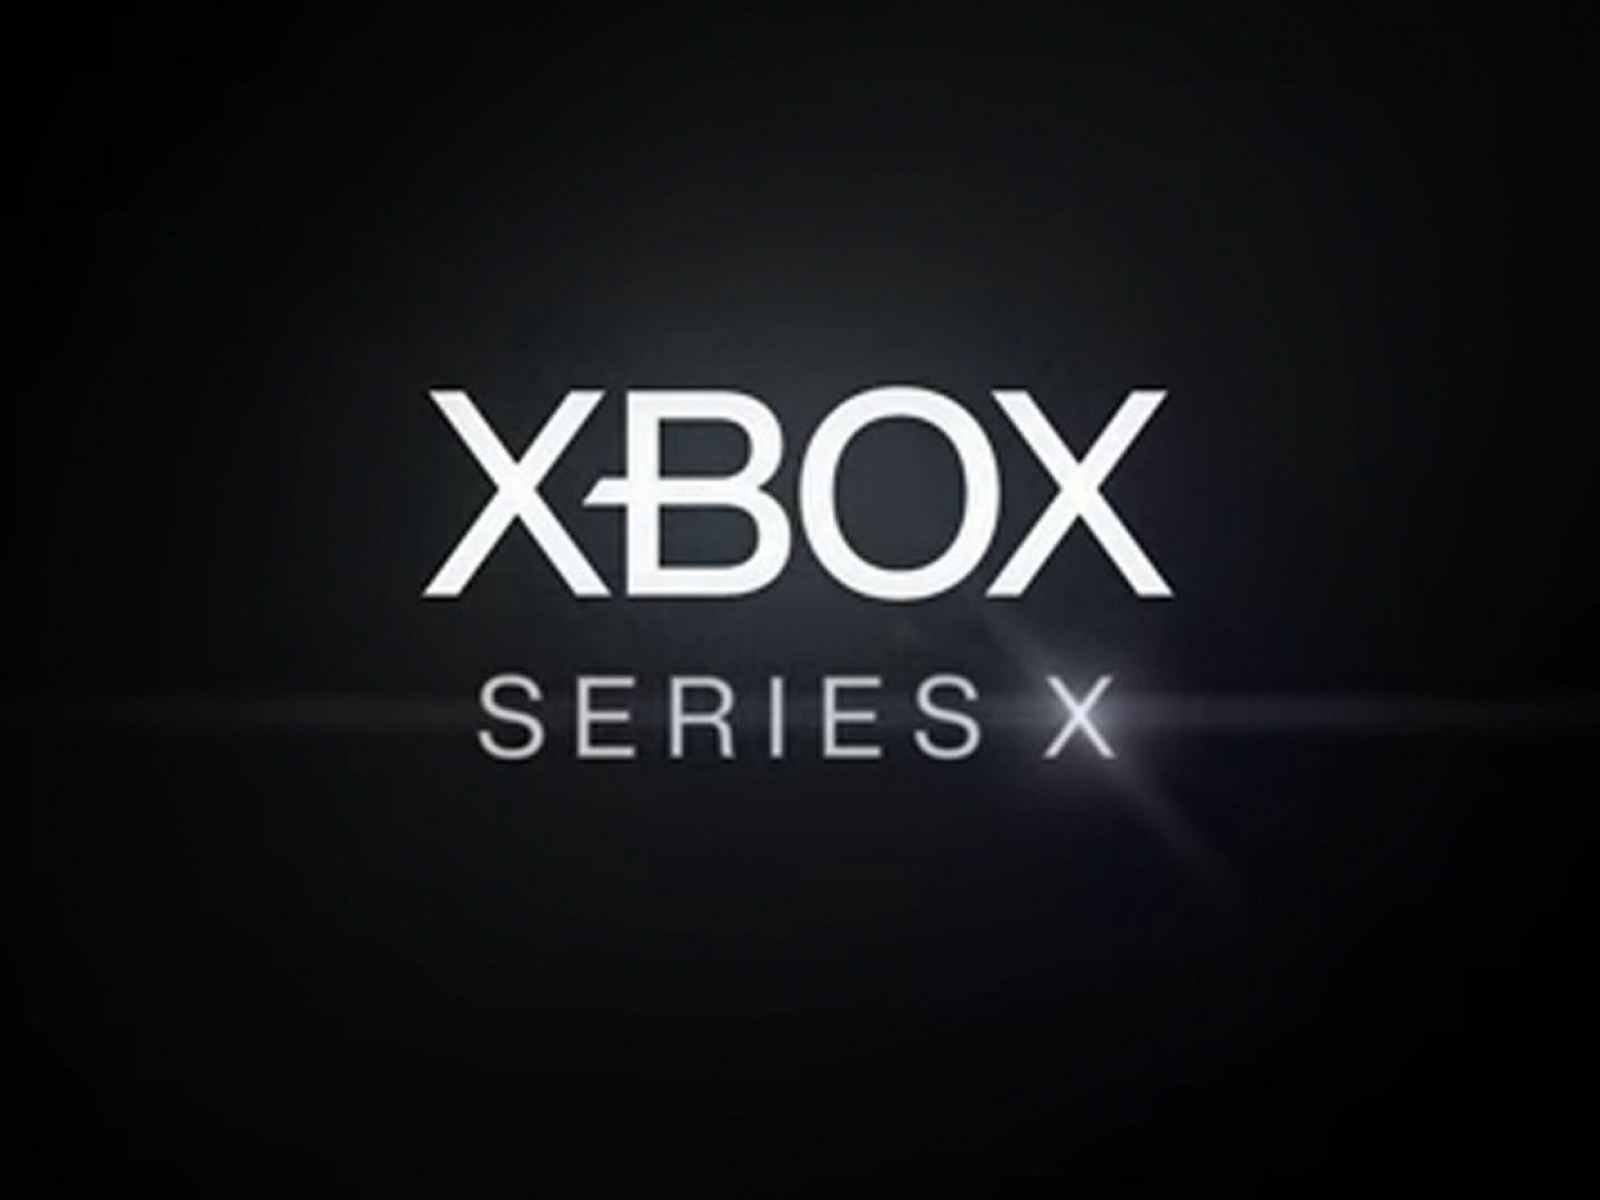 New Xbox Series X Details Reveal Specs And Faster Load Times